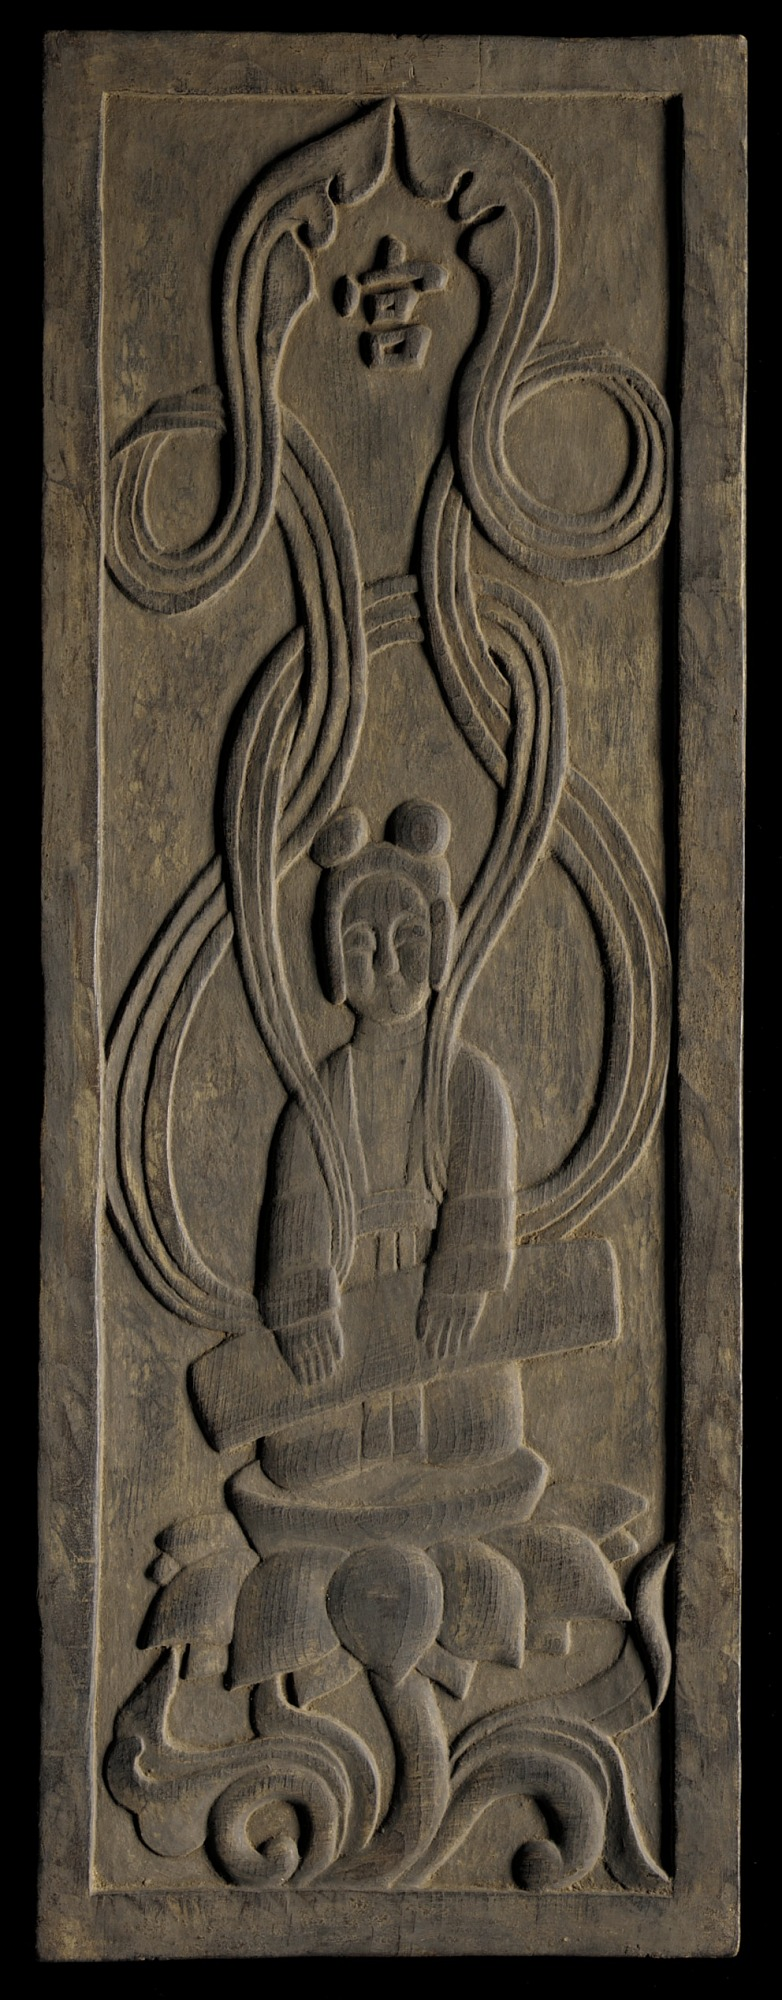 Buddhist apsara playing a zither